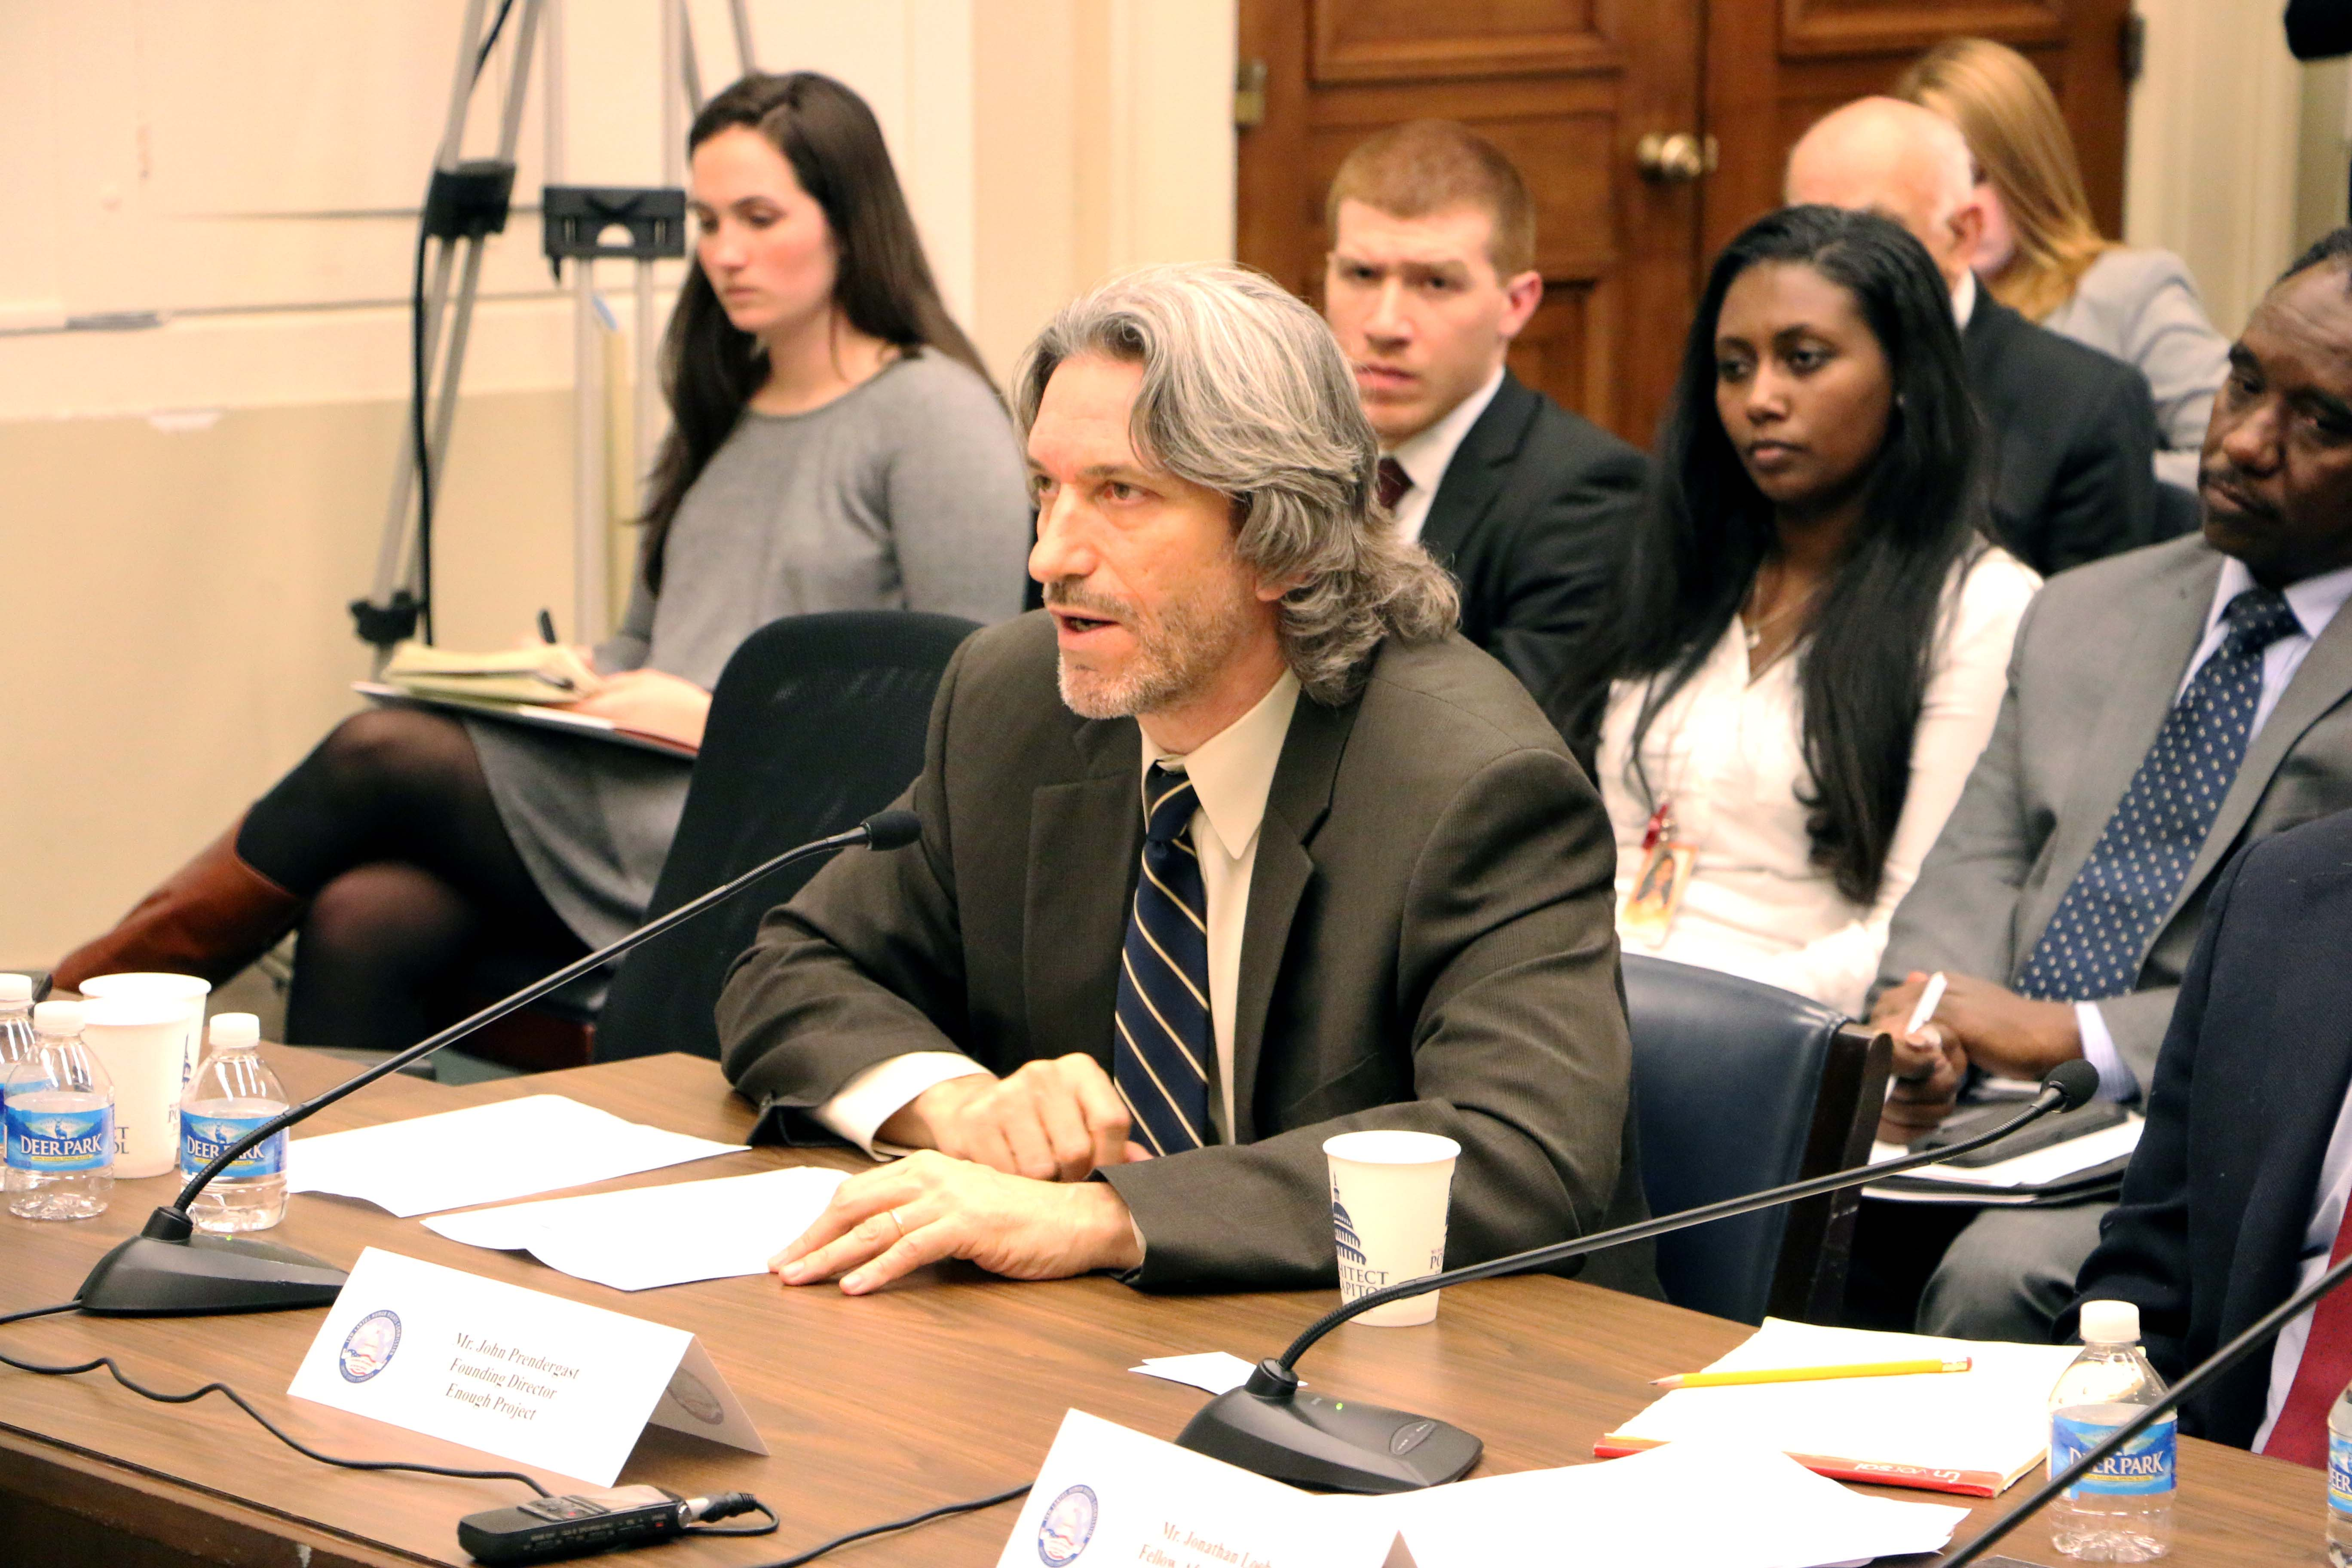 John Prendergast Testifies before the Tom Lantos Human Rights Commission